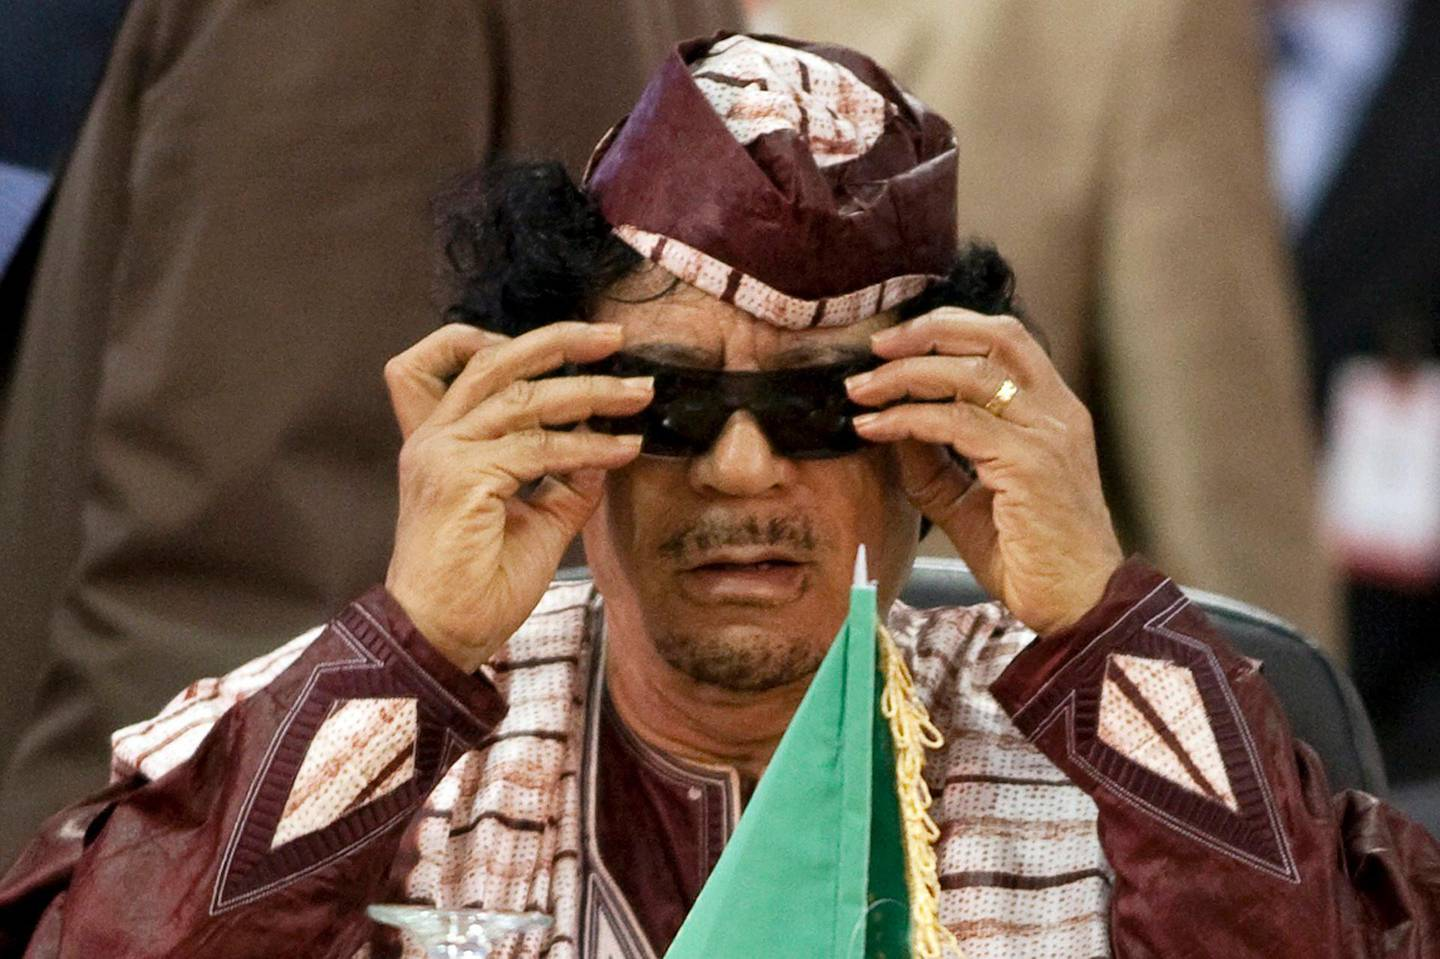 Libya's leader Muammar Gaddafi adjusts his glasses at the Africa-South America Summit on Margarita Island in this September 27, 2009 file photo. Gaddafi died of wounds suffered in his capture near his hometown of Sirte on October 20, 2011, a senior NTC military official said. National Transitional Council official Abdel Majid Mlegta told Reuters earlier that Gaddafi was captured and wounded in both legs at dawn on Thursday as he tried to flee in a convoy which NATO warplanes attacked.  REUTERS/Carlos Garcia Rawlins/Files (VENEZUELA - Tags: POLITICS) *** Local Caption ***  SIN303_LIBYA_1020_11.JPG